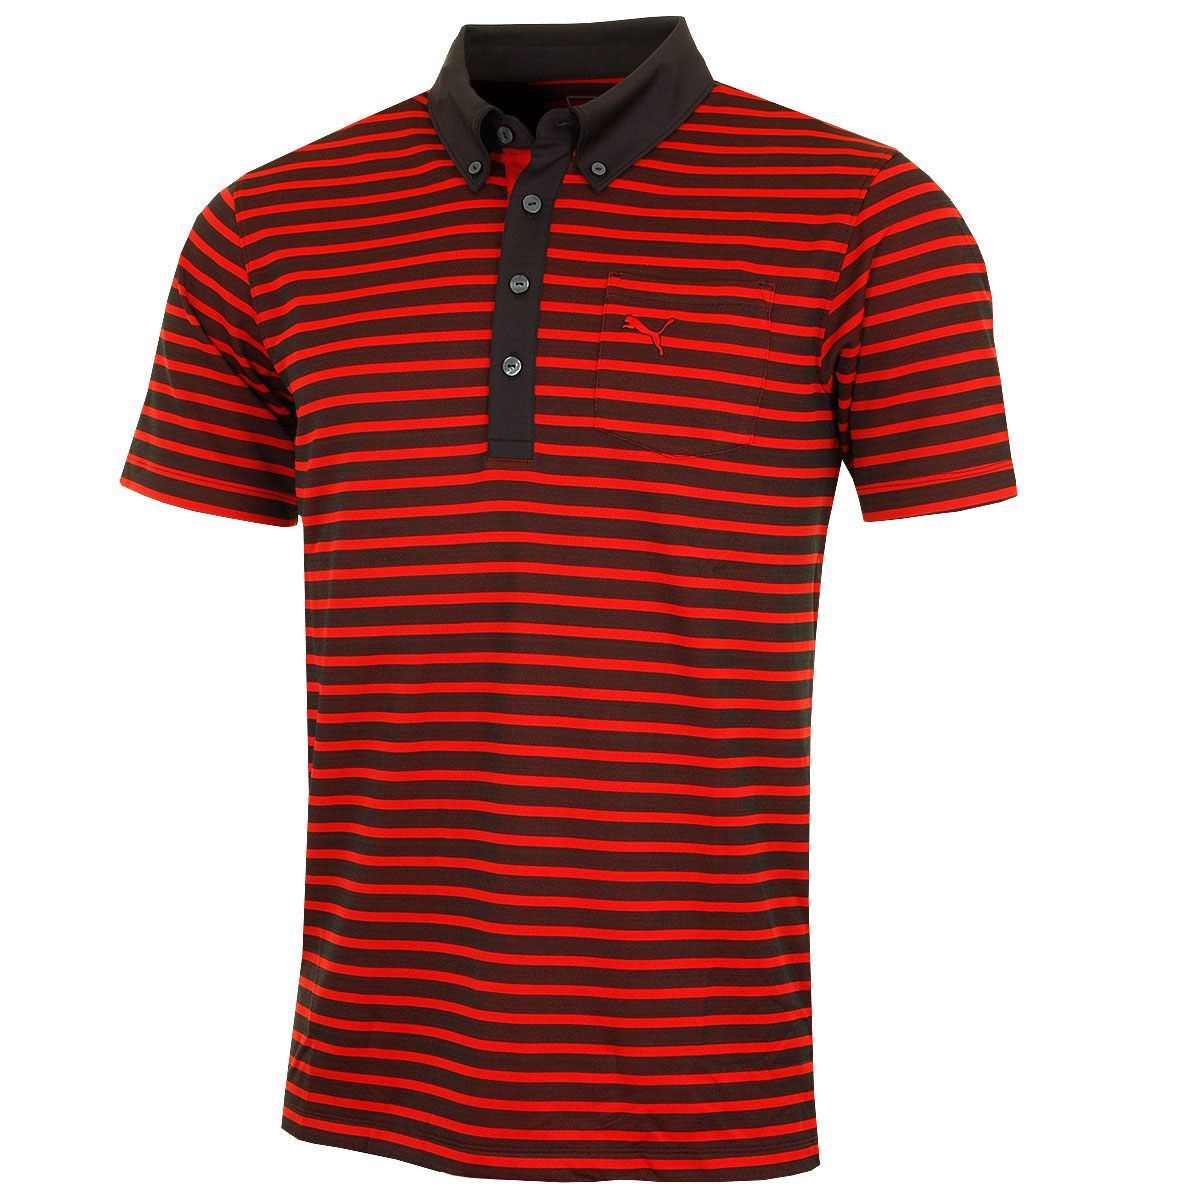 Puma golf mens stripe pocket polo shirt 568316 drycell for Mens puma golf shirts